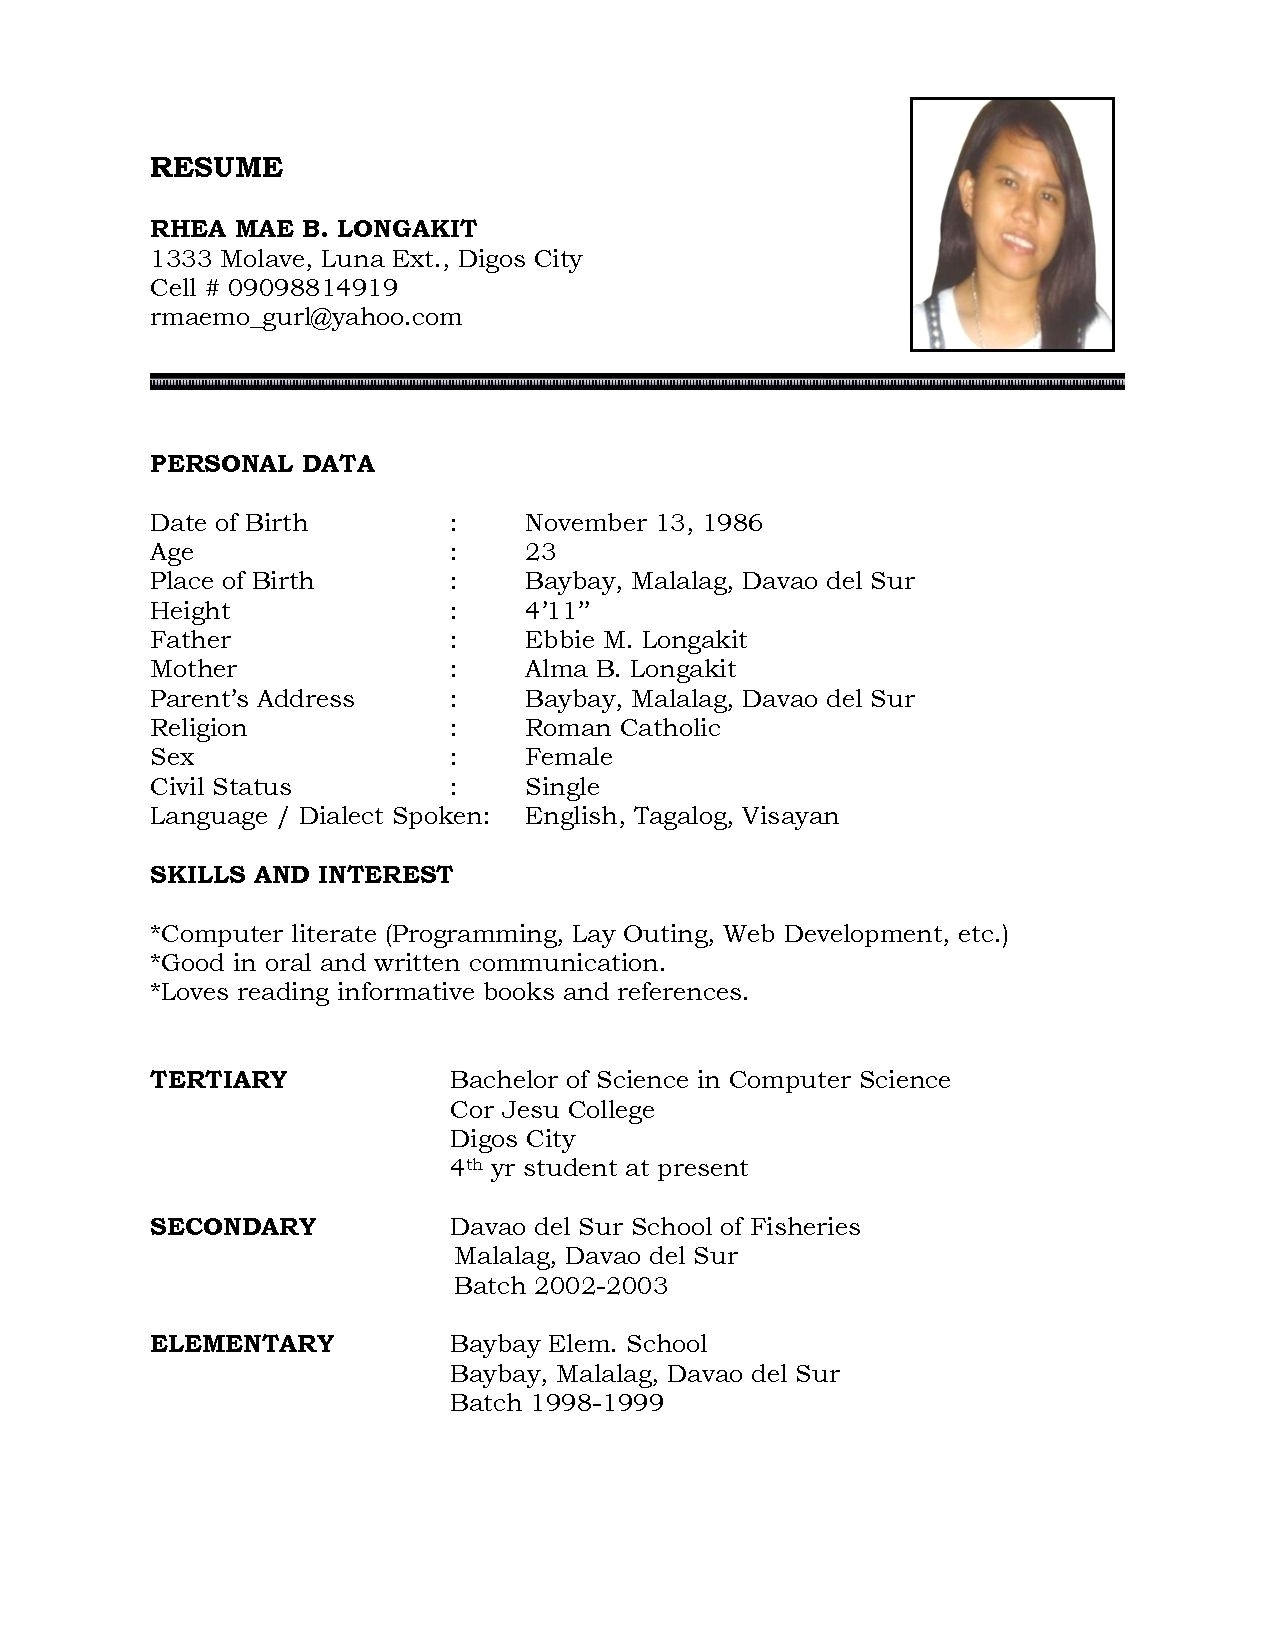 Basic Resume Template Free Resume Template Word Docx Basic Docormat Sampleill In The Blank